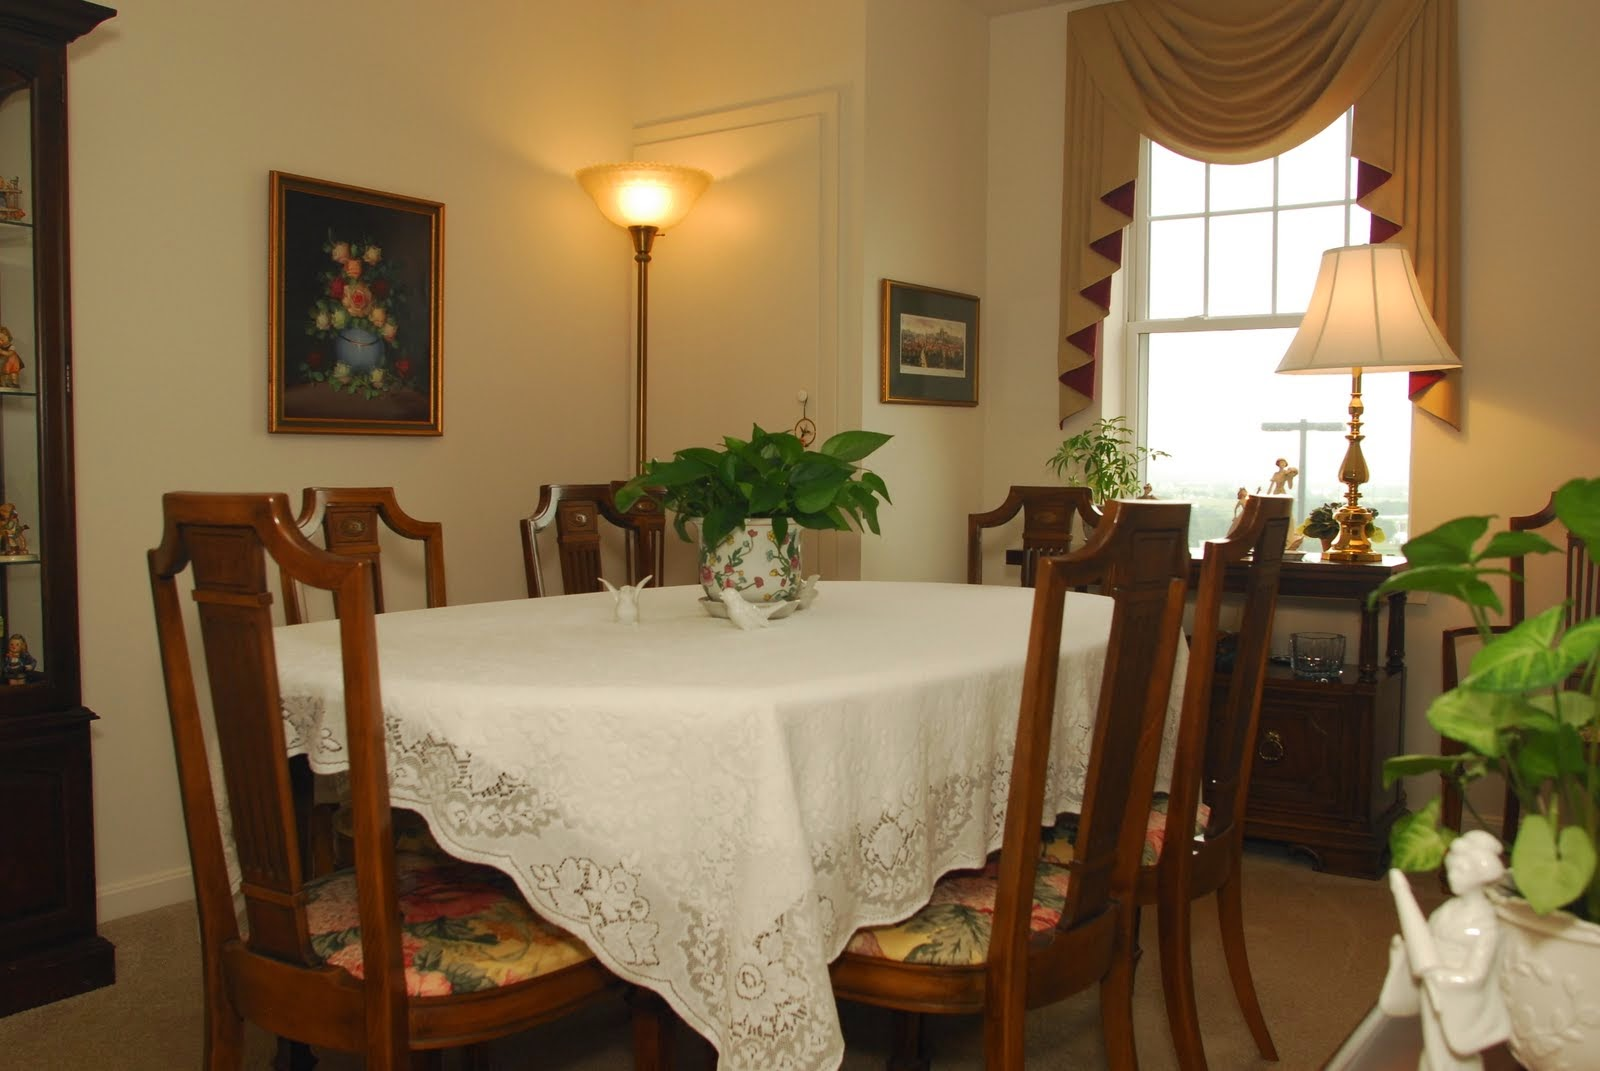 Here one of the bedrooms is used as a formal dining room in one of the Crest View apartments